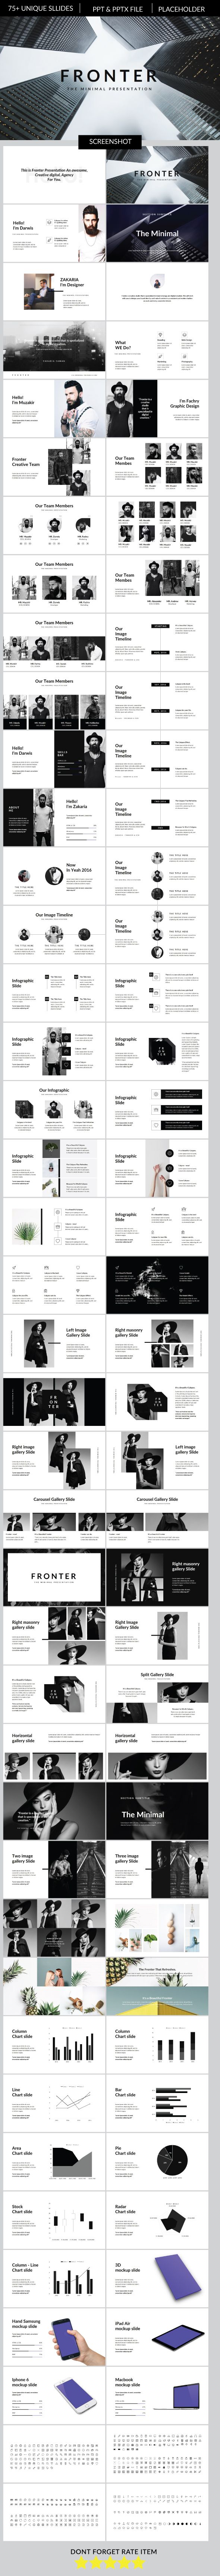 Fronter Multipurpose Presentation Powerpoint Template